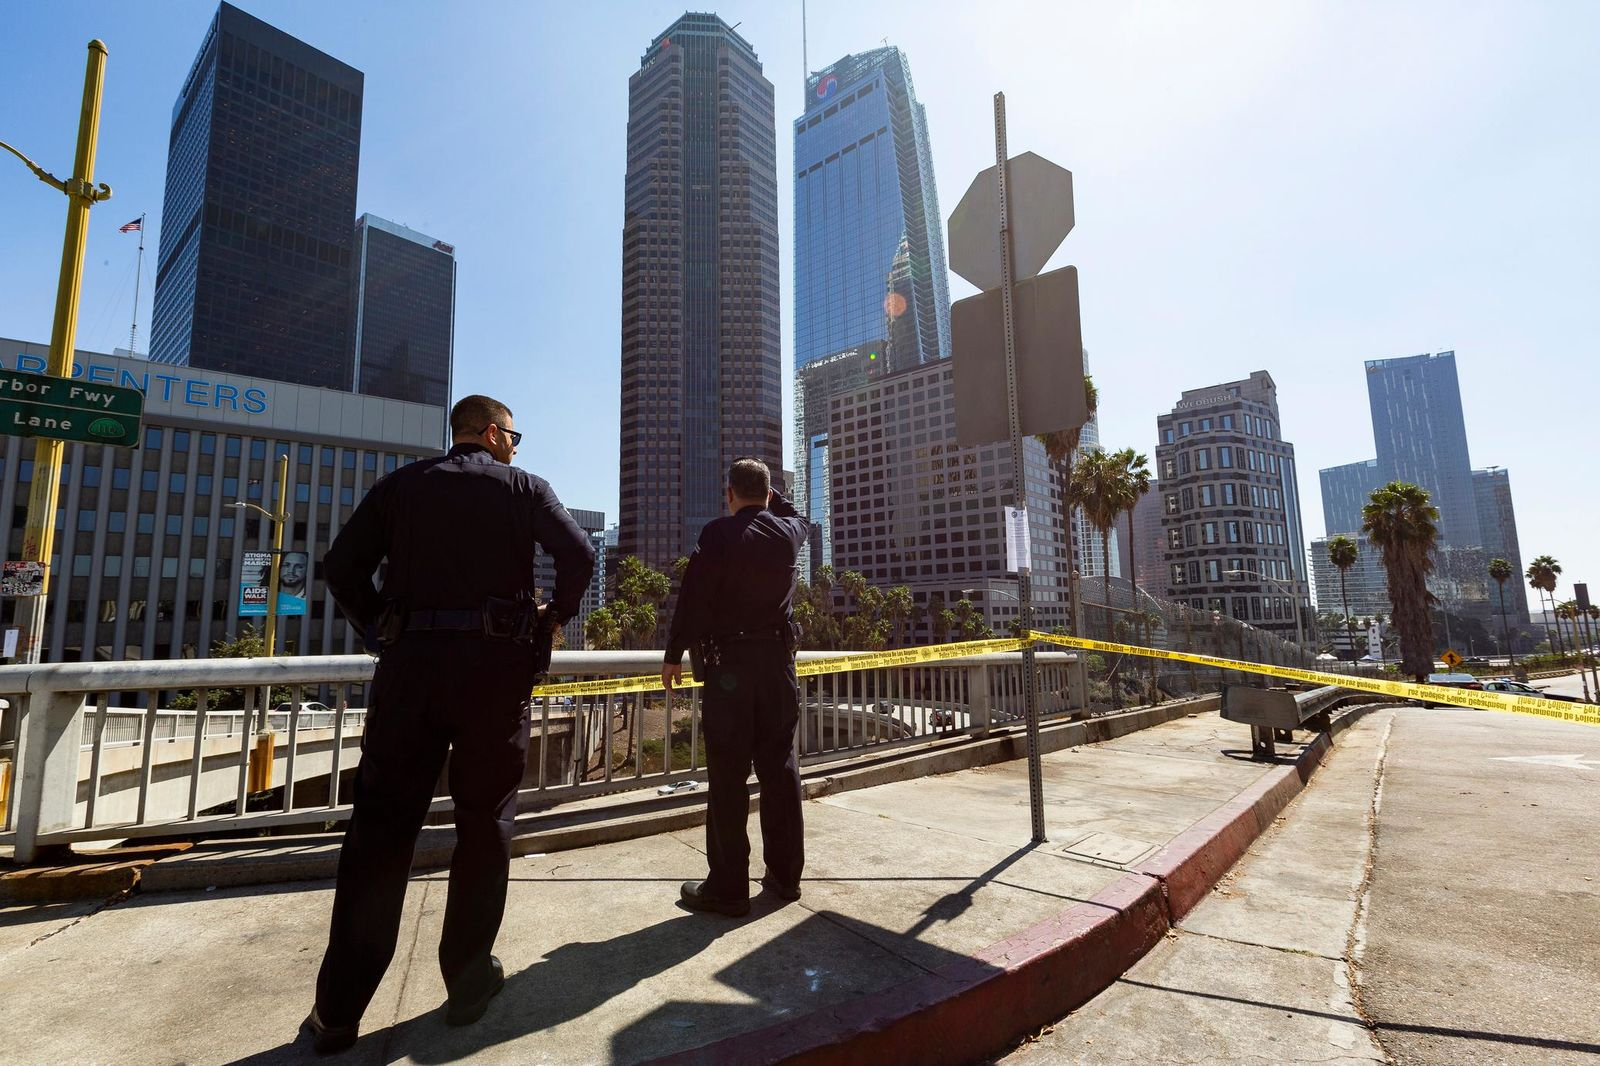 Los Angeles Police officers watch over a closed street parallel to the Harbor Freeway ramp, during the visit of President Donald